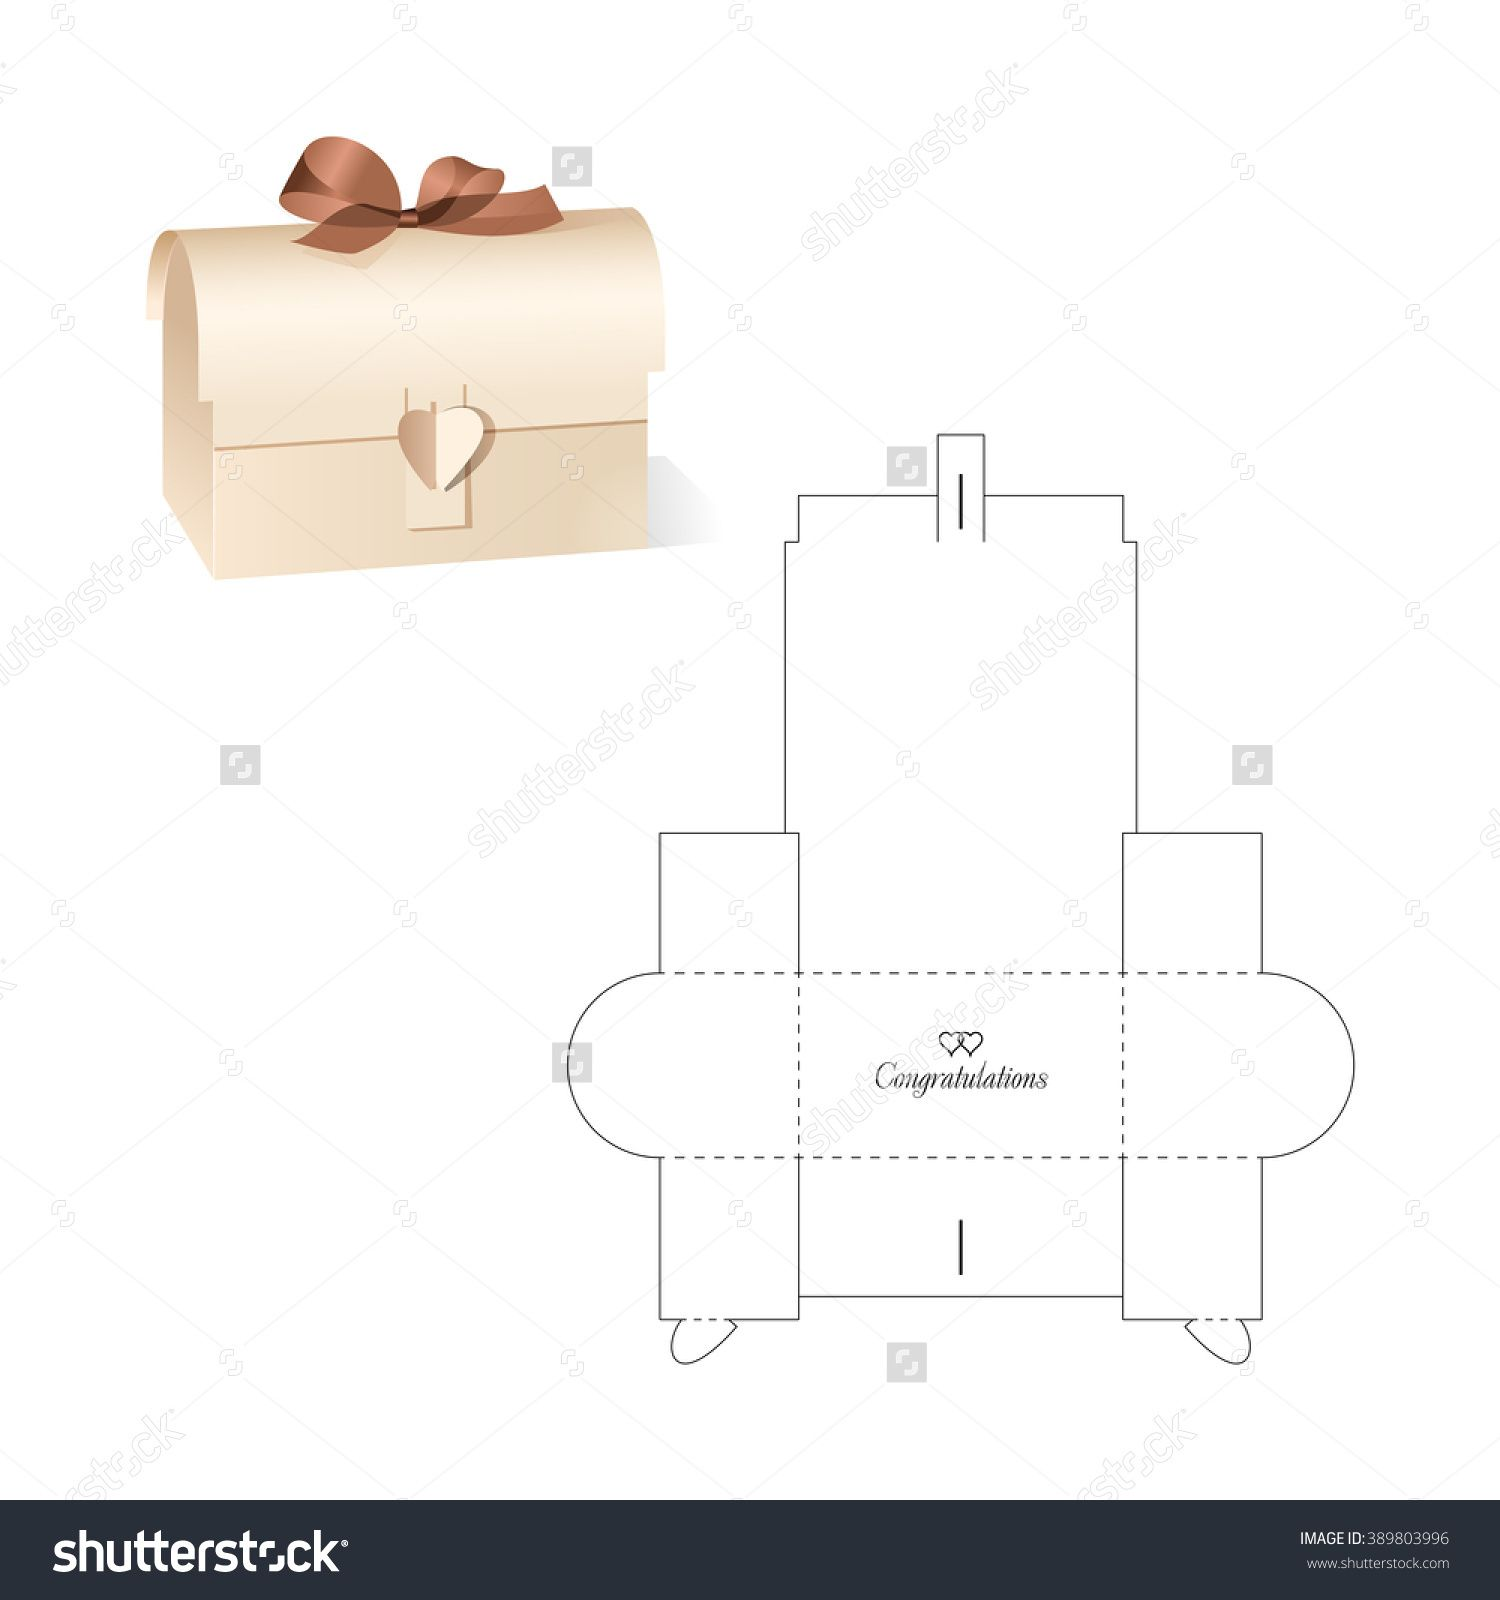 Retail box with blueprint template stock vector illustration retail box with blueprint template stock vector illustration 389803996 shutterstock malvernweather Images